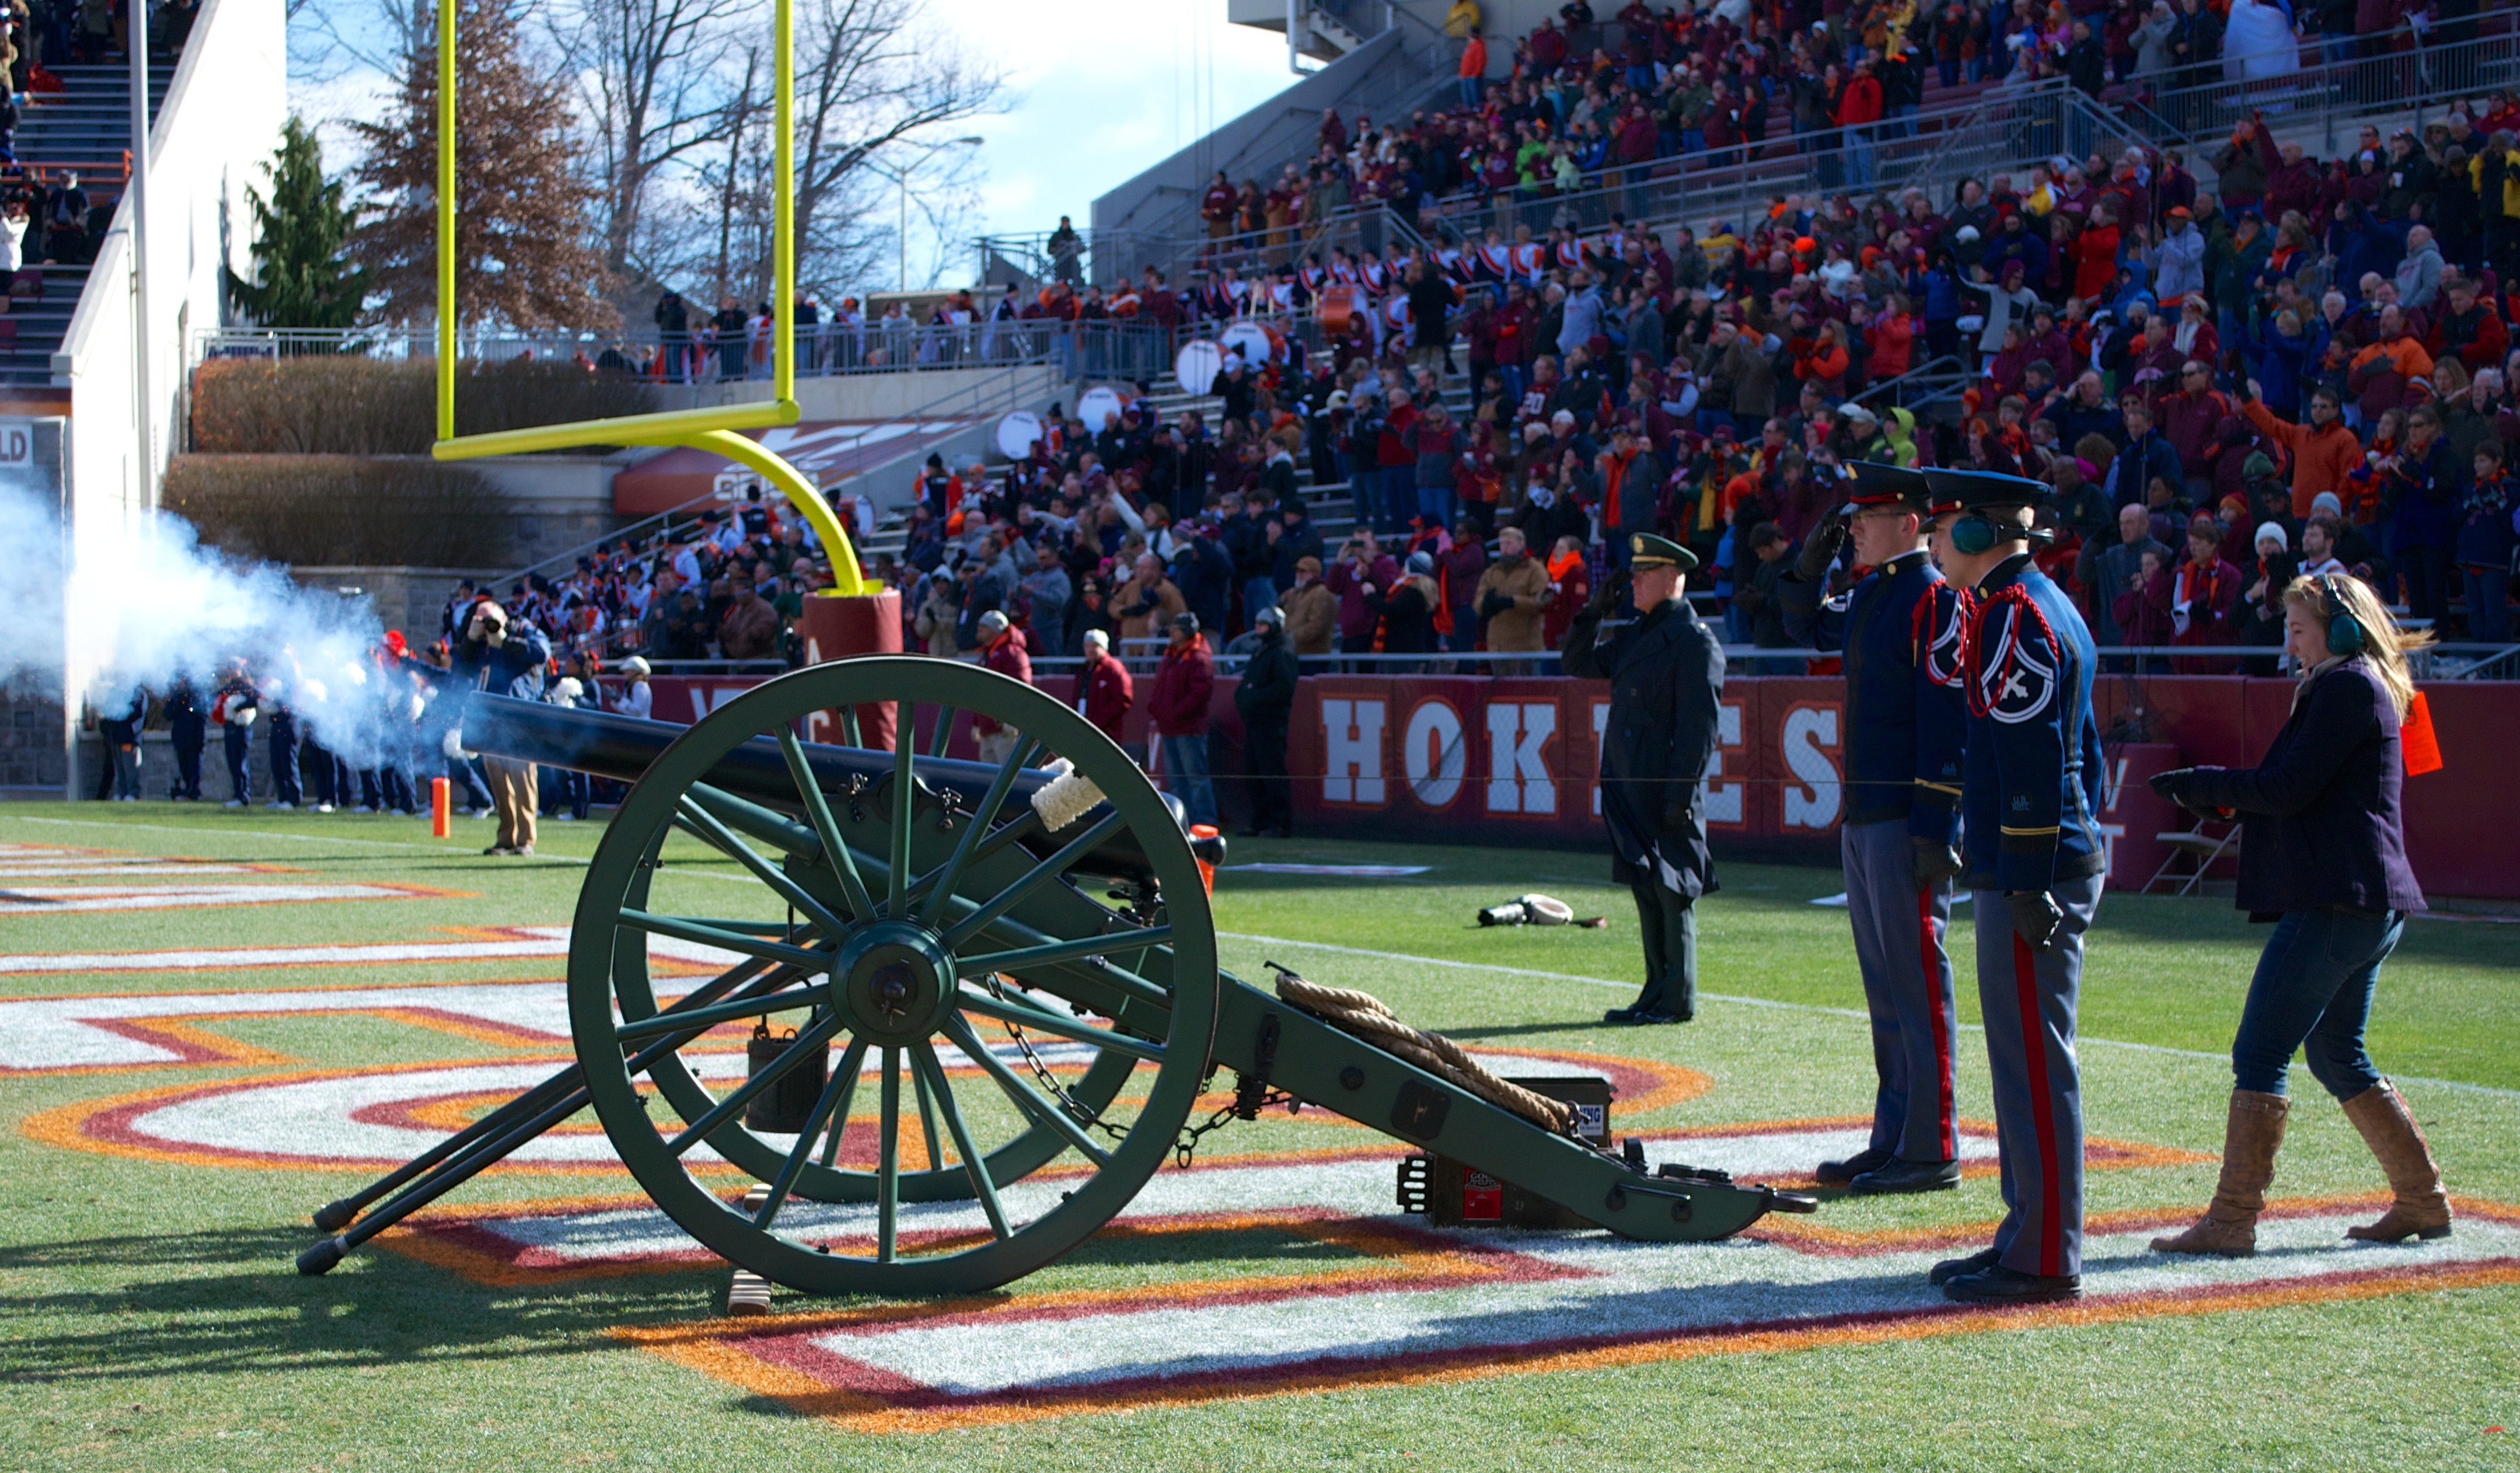 Wounded Warrior Project raffle winner fires Skipper prior to the 2012 Virginia Tech versus UVA game.